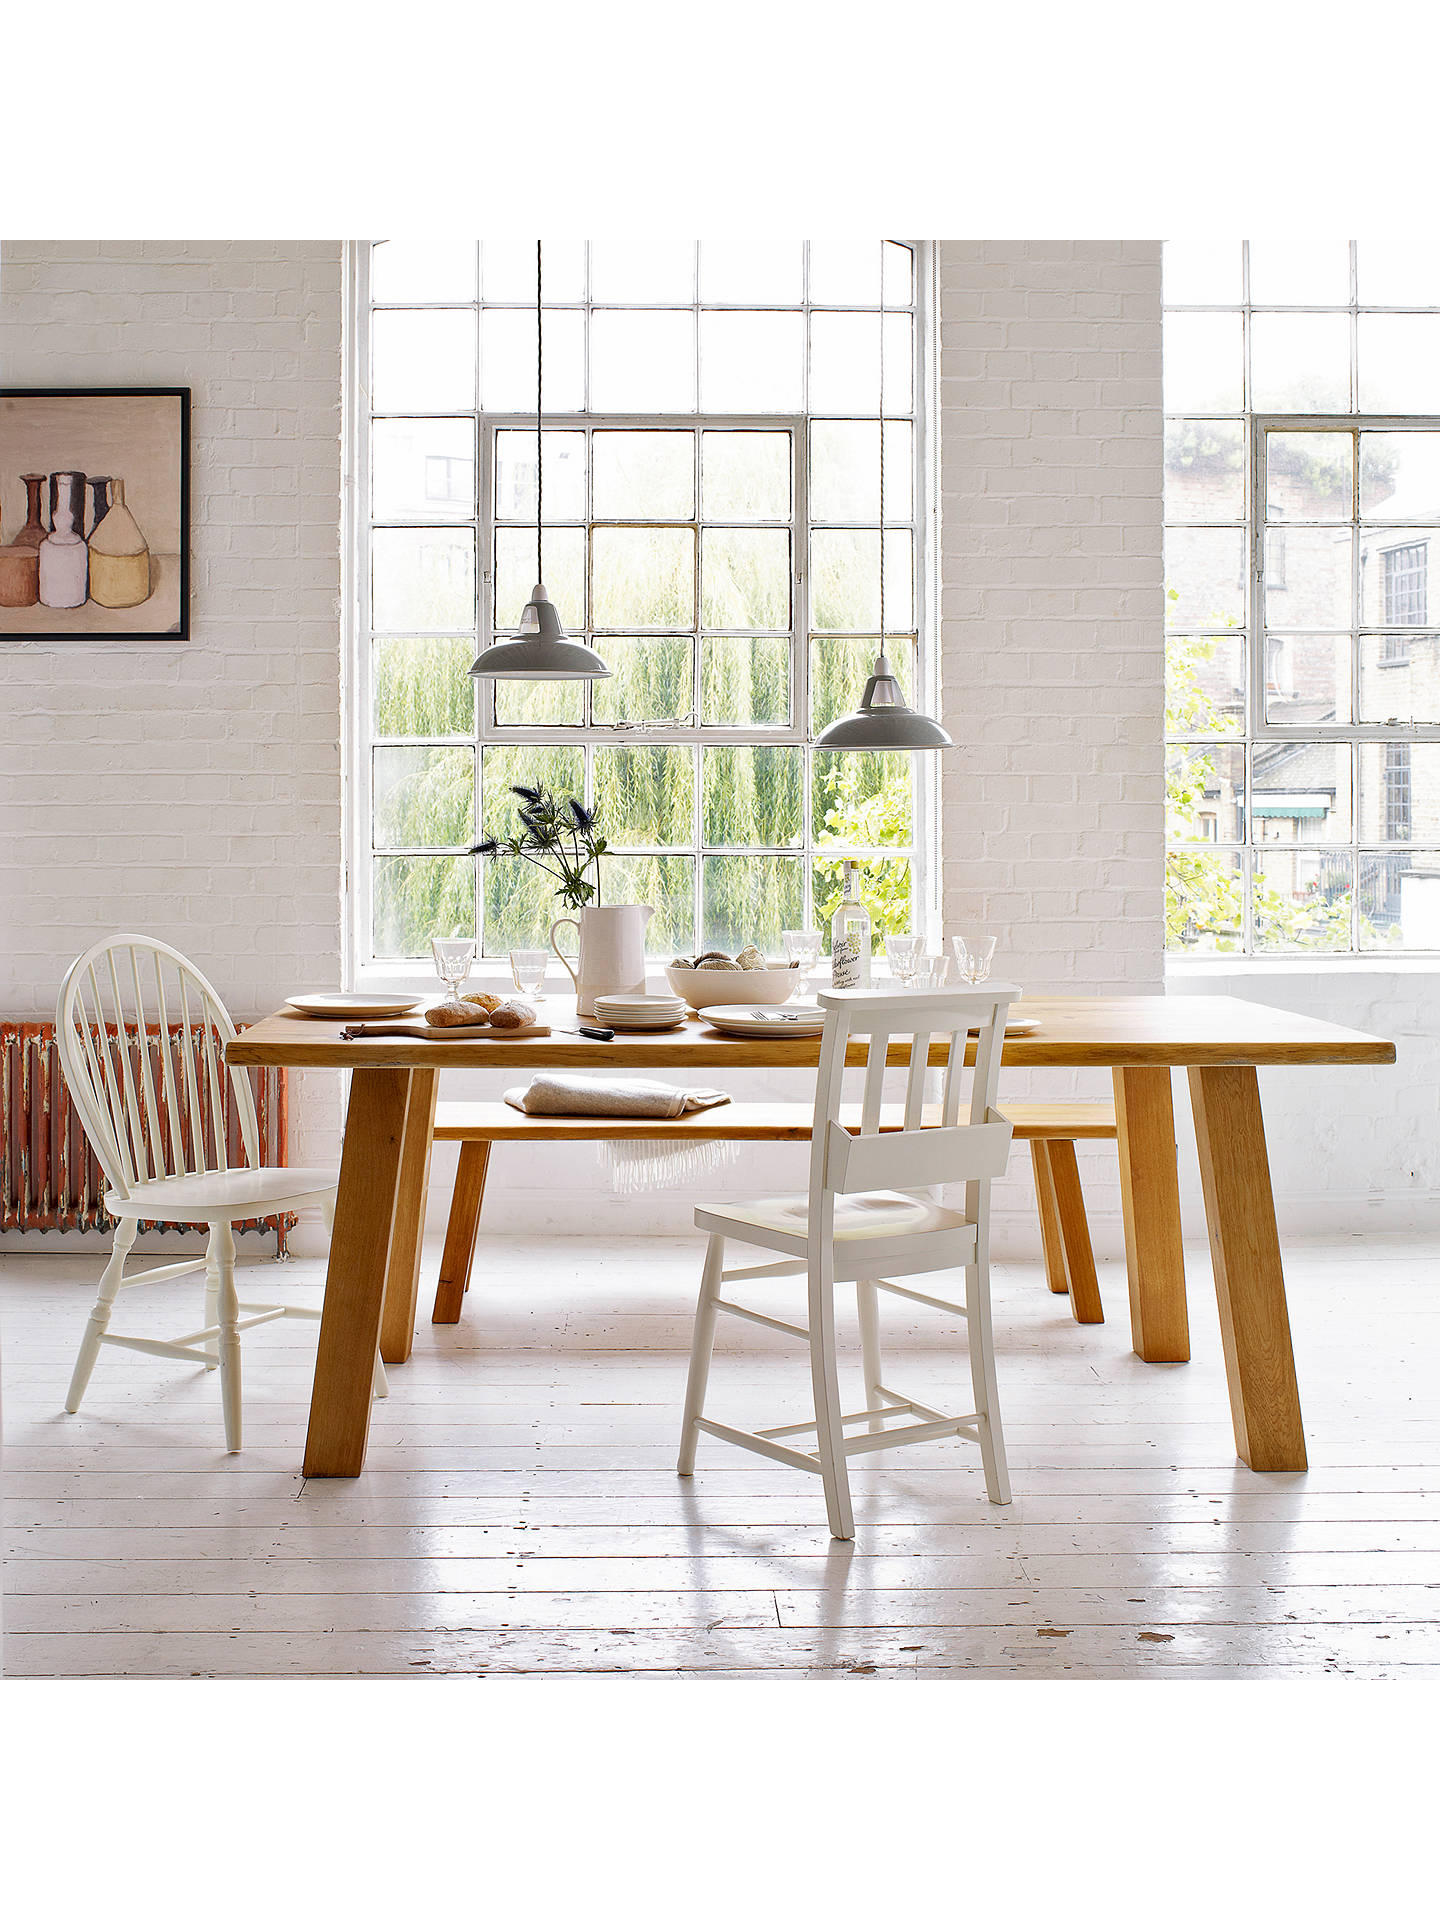 John Lewis Croft Collection Glendale 6 Seater Dining Table ...